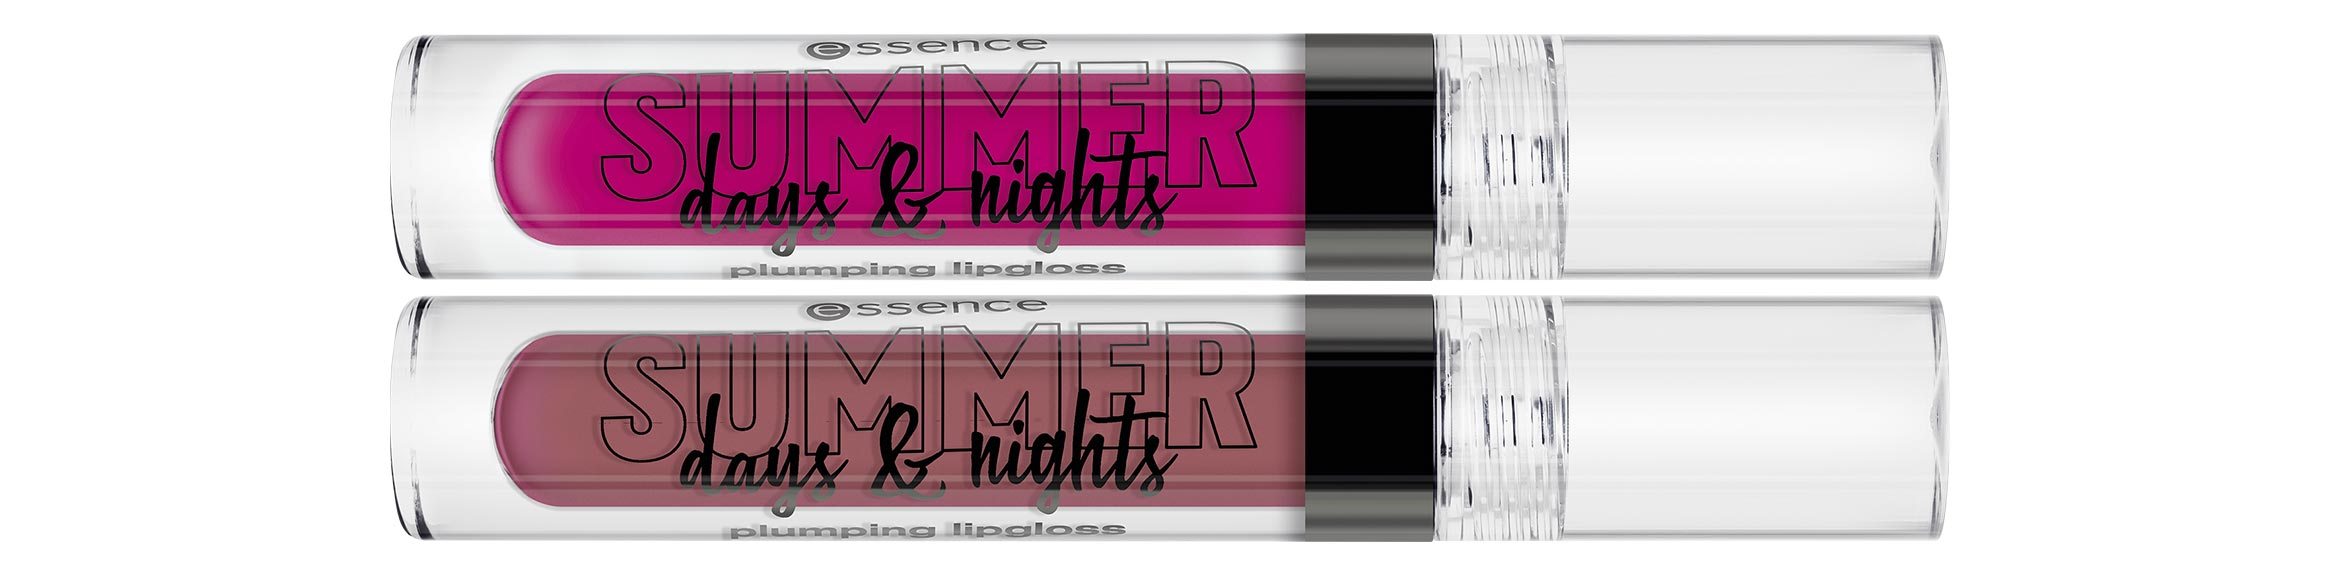 essence-summer-days-and-nights-plumping-lipgloss